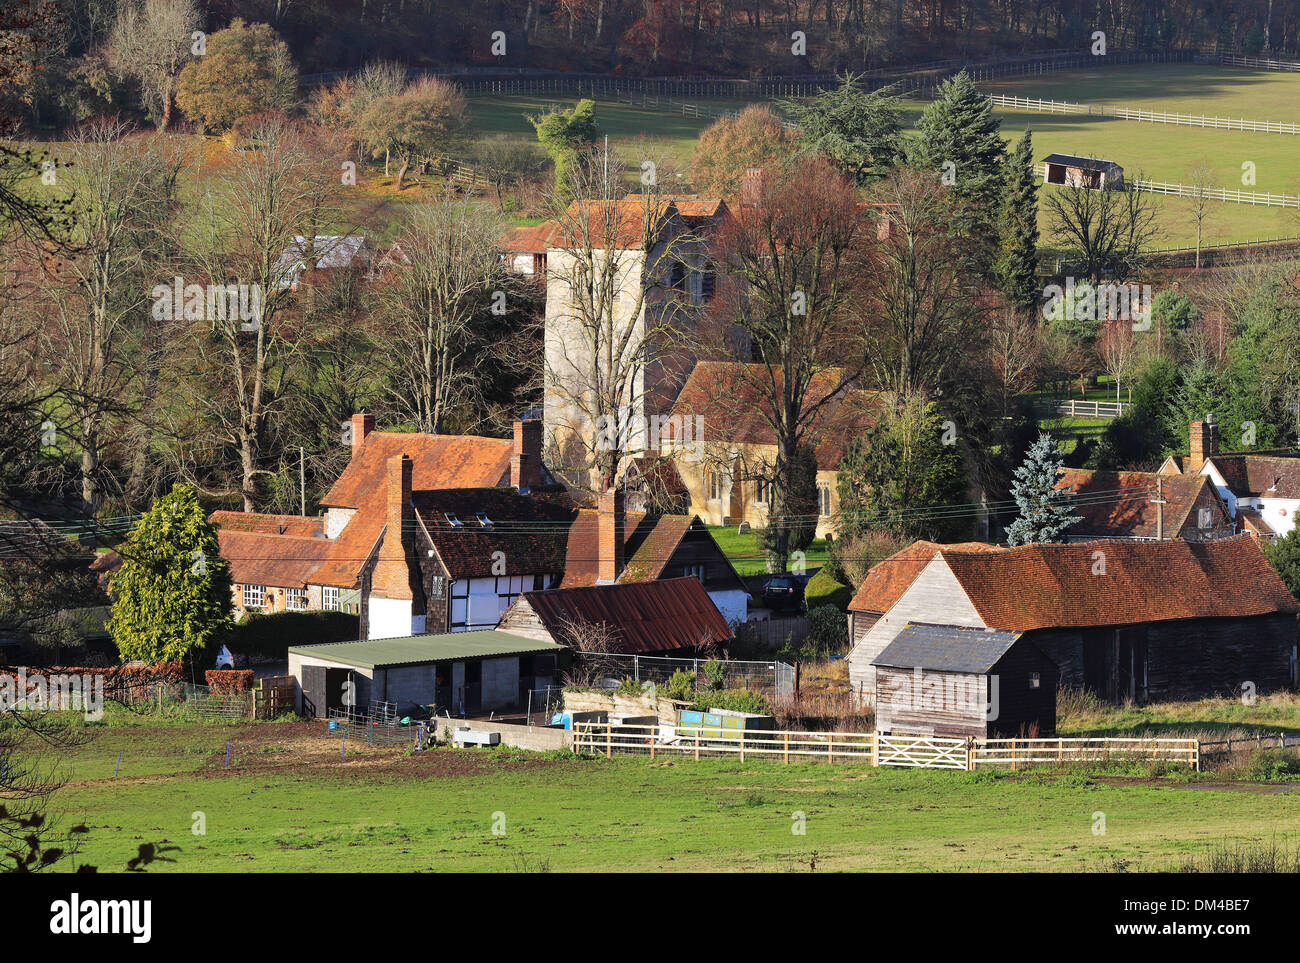 An English Rural Landscape in the Chiltern Hills with the Hamlet of Fingest - Stock Image